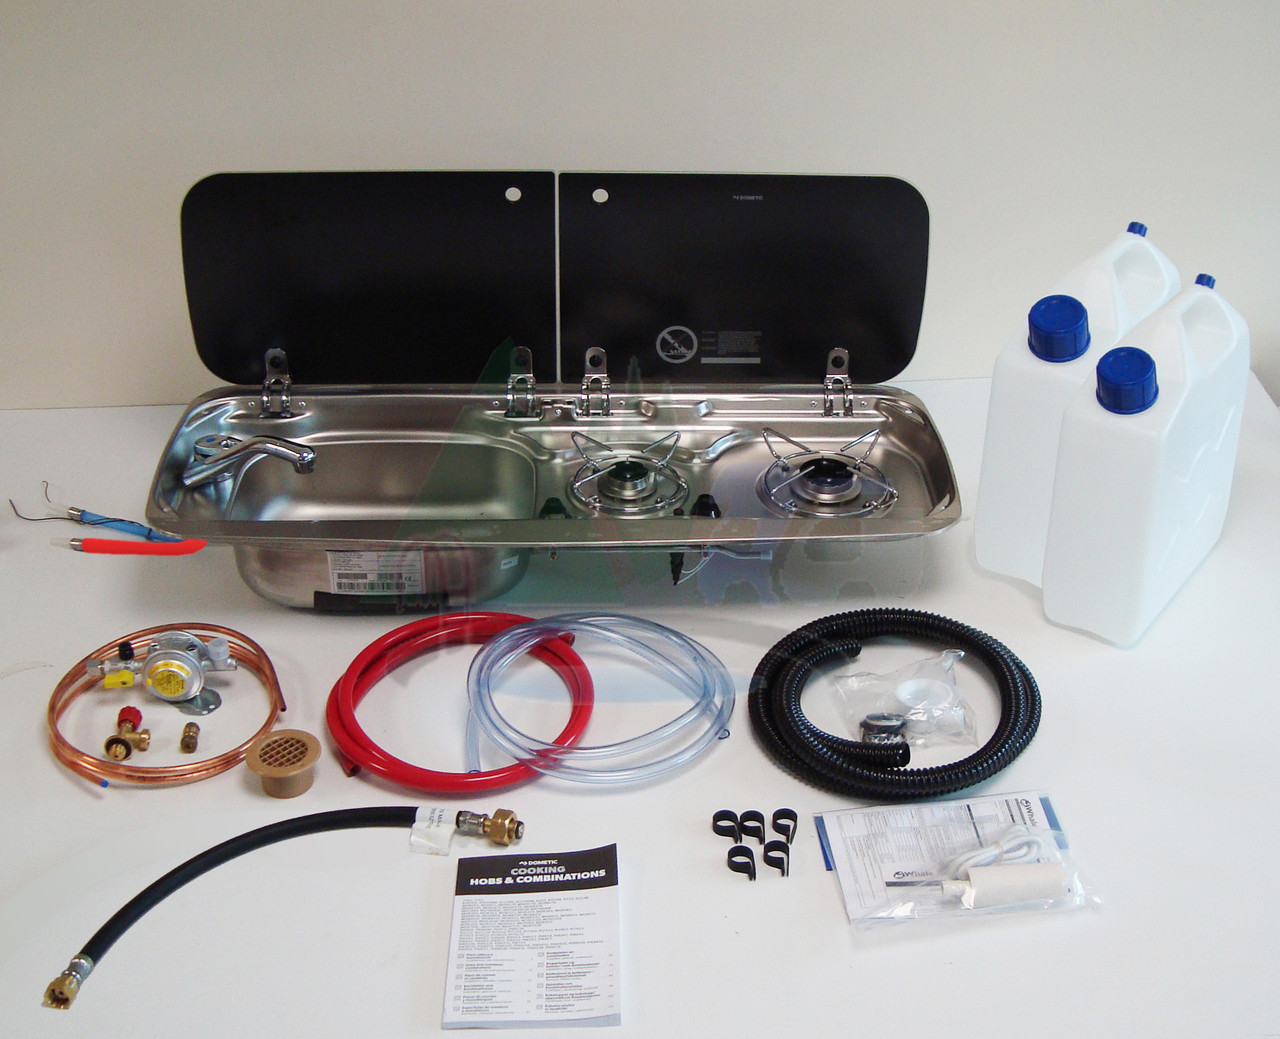 Dometic Smev 9222 Campervan Conversion Kit 1 Hob and Left Hand Sink (*Image shows kit with Bulkhead Regulator and Mixer tap options)